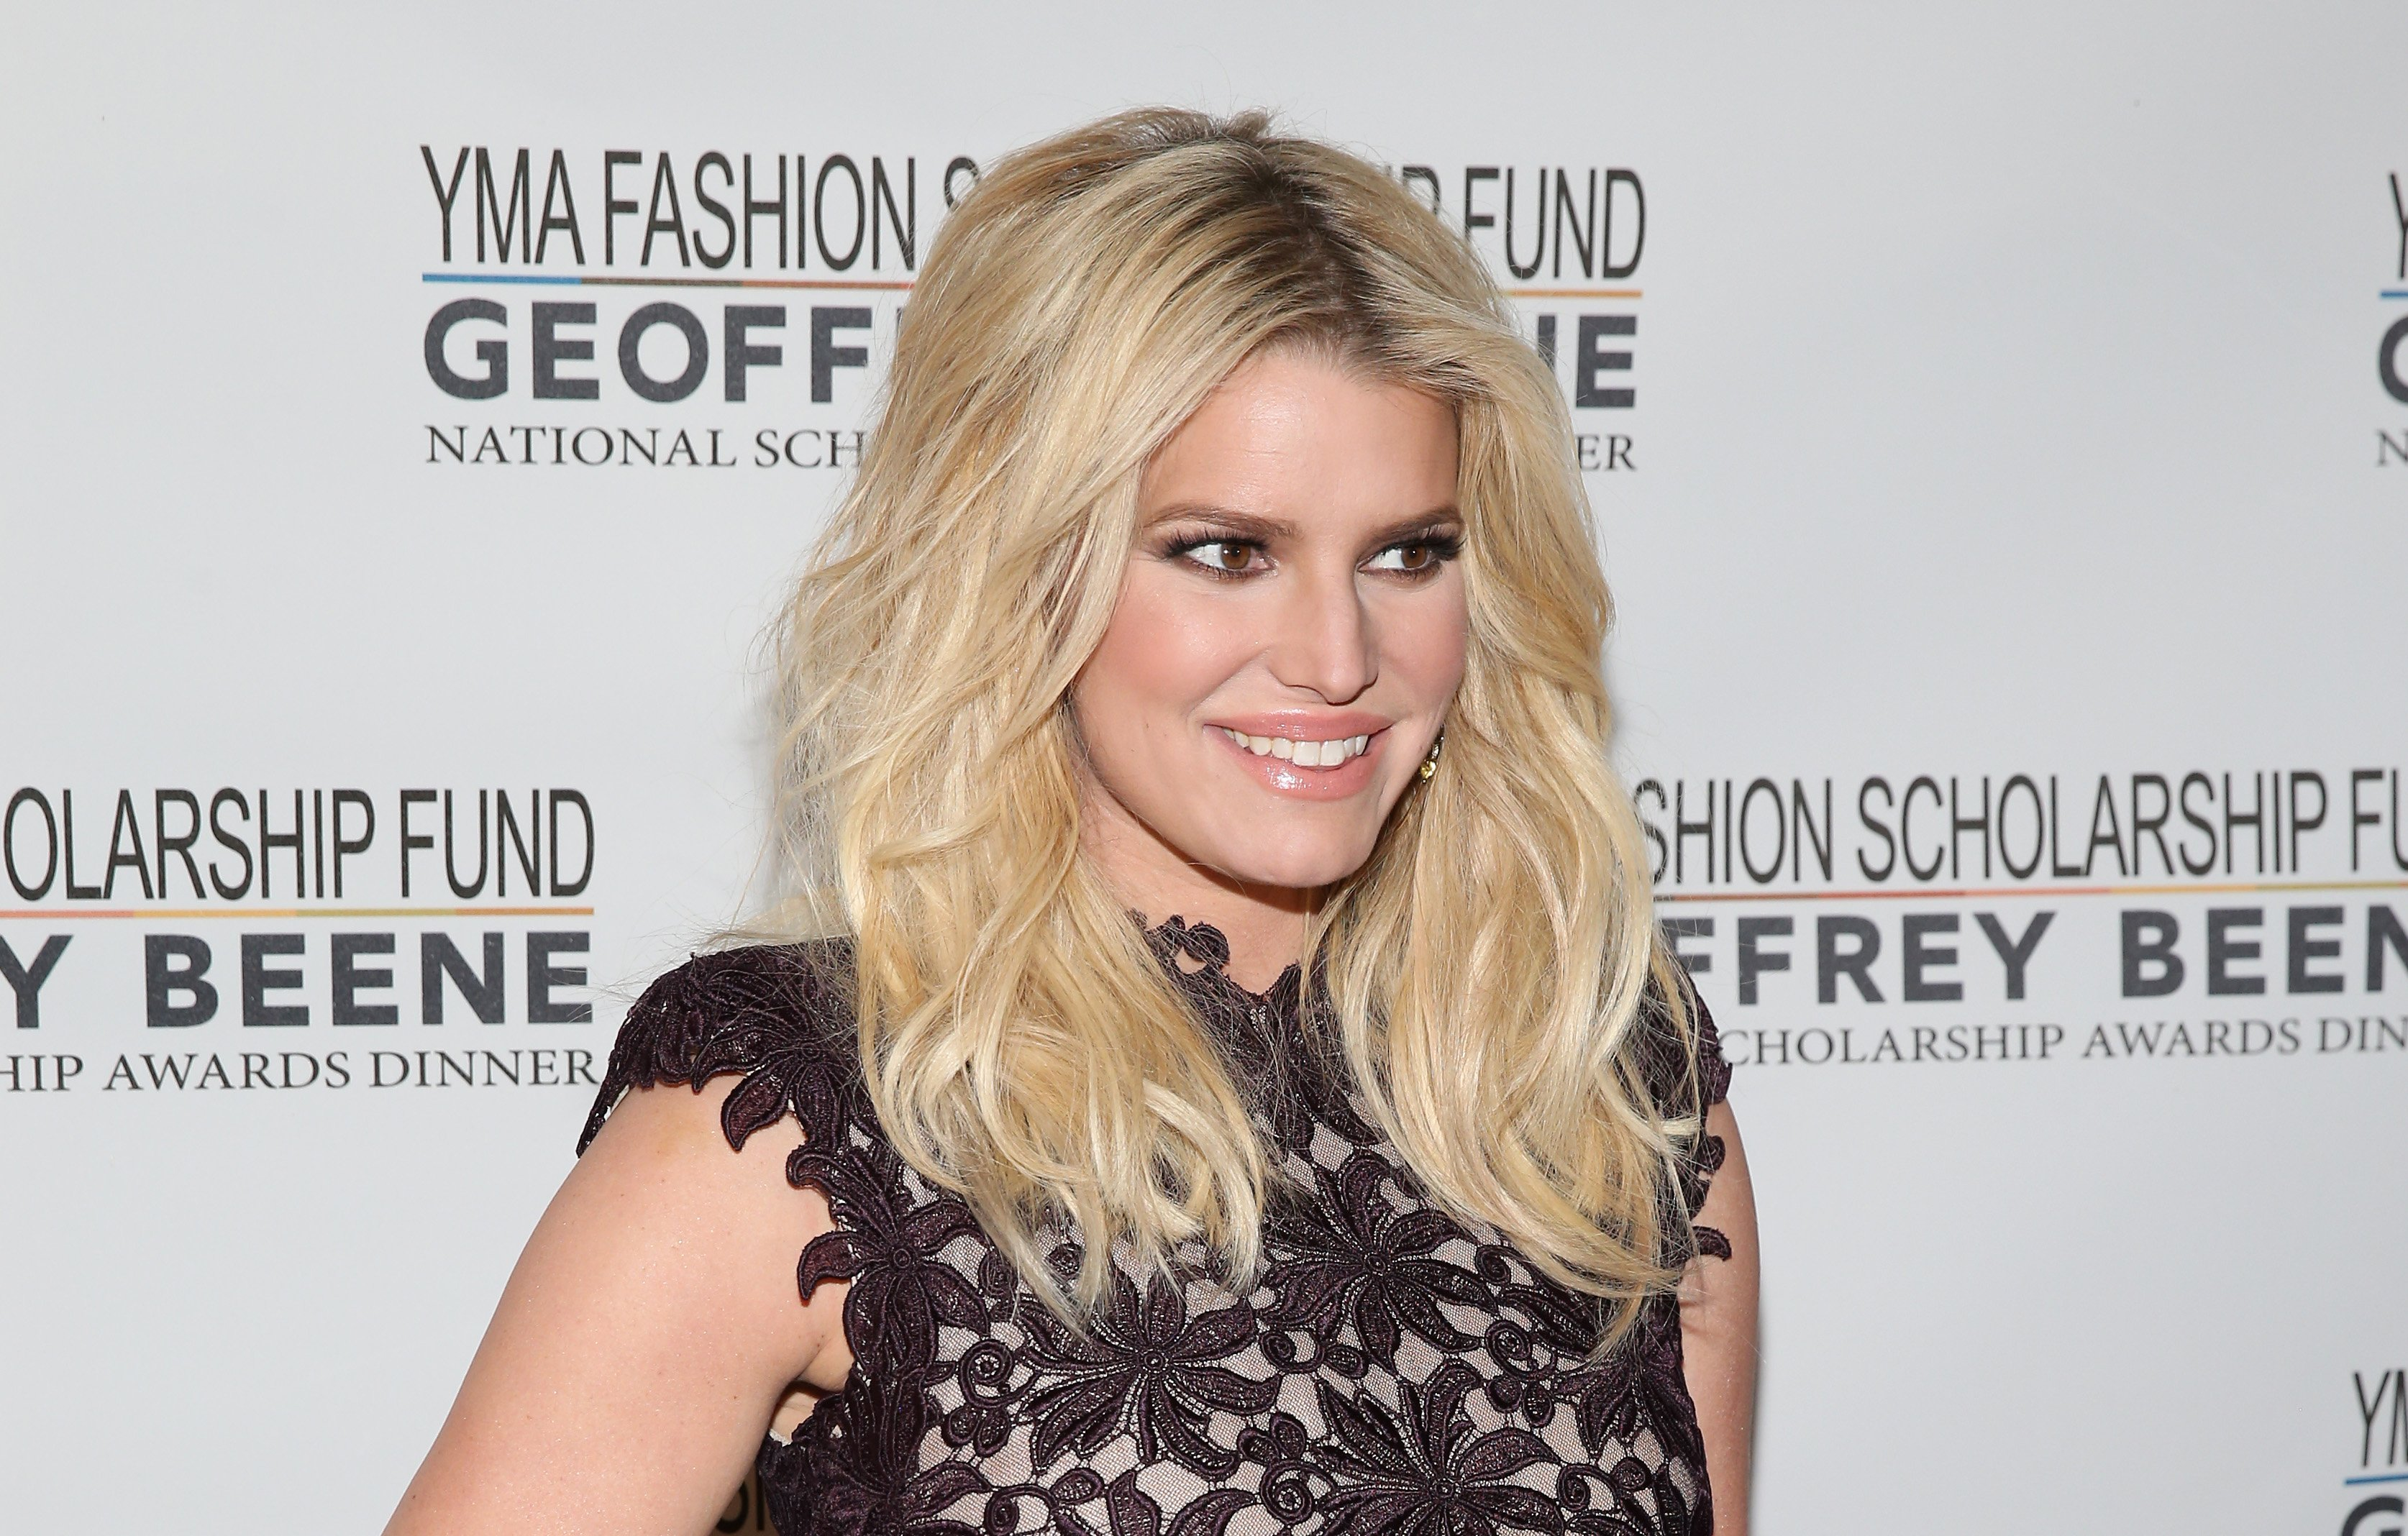 Jessica Simpson pictured at the YMA Fashion Scholarship Fund Geoffrey Beene National Scholarship Awards Gala, 2016, New York City. | Photo: Getty Images